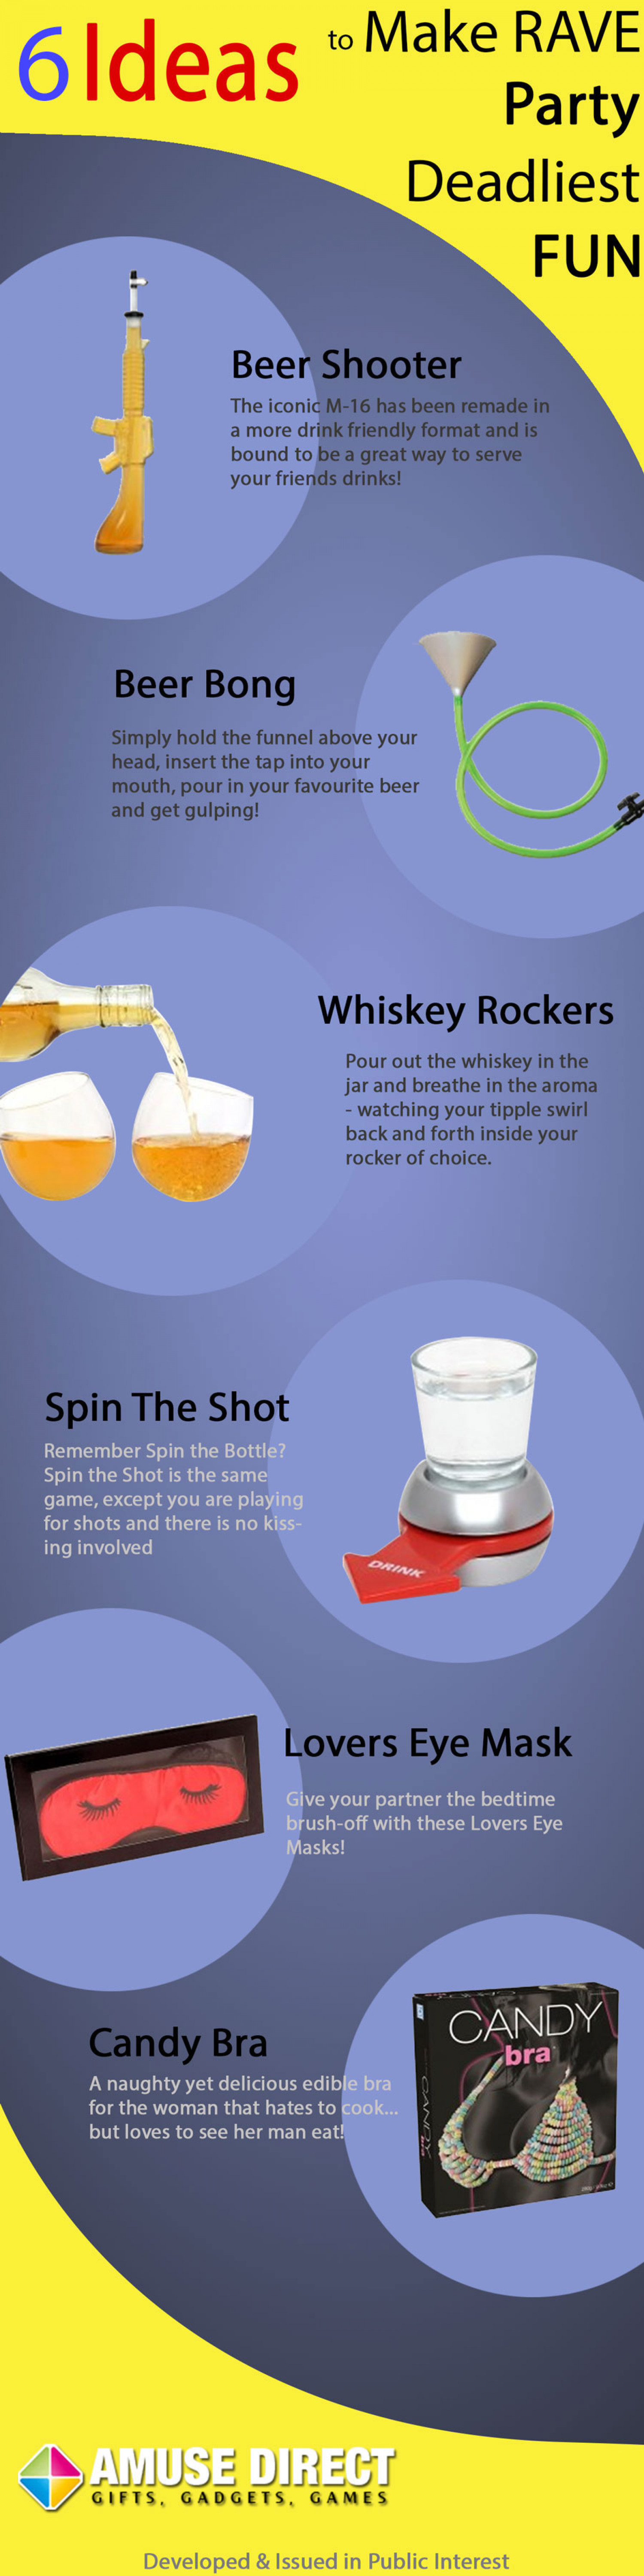 6-Ideas-to-Make-RAVE-Party-Deadliest-FUN Infographic